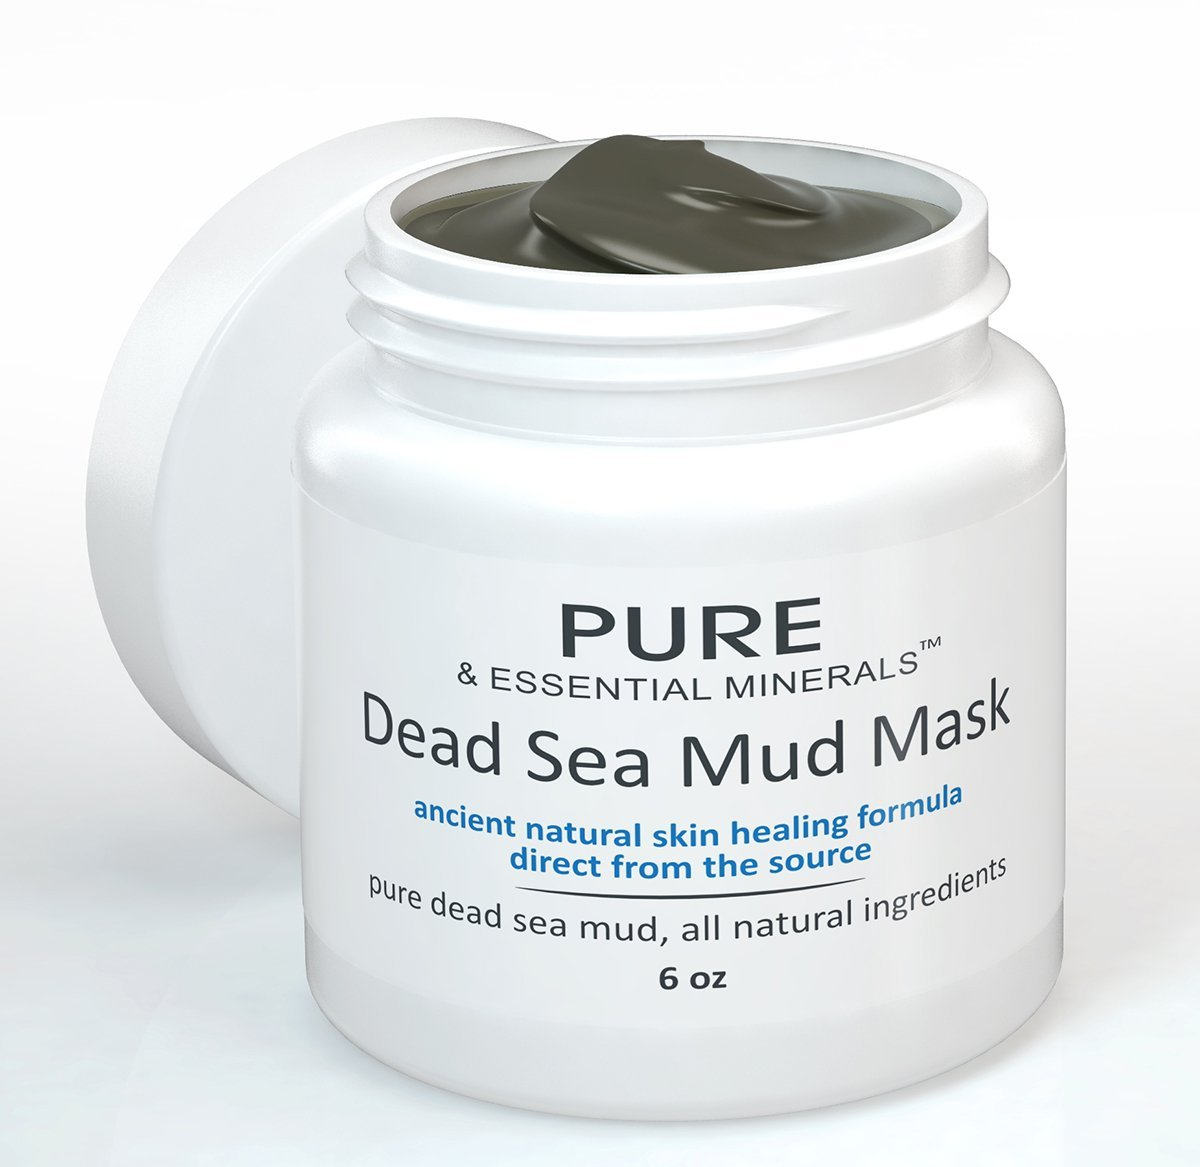 Need Alba organics deep sea facial mask review